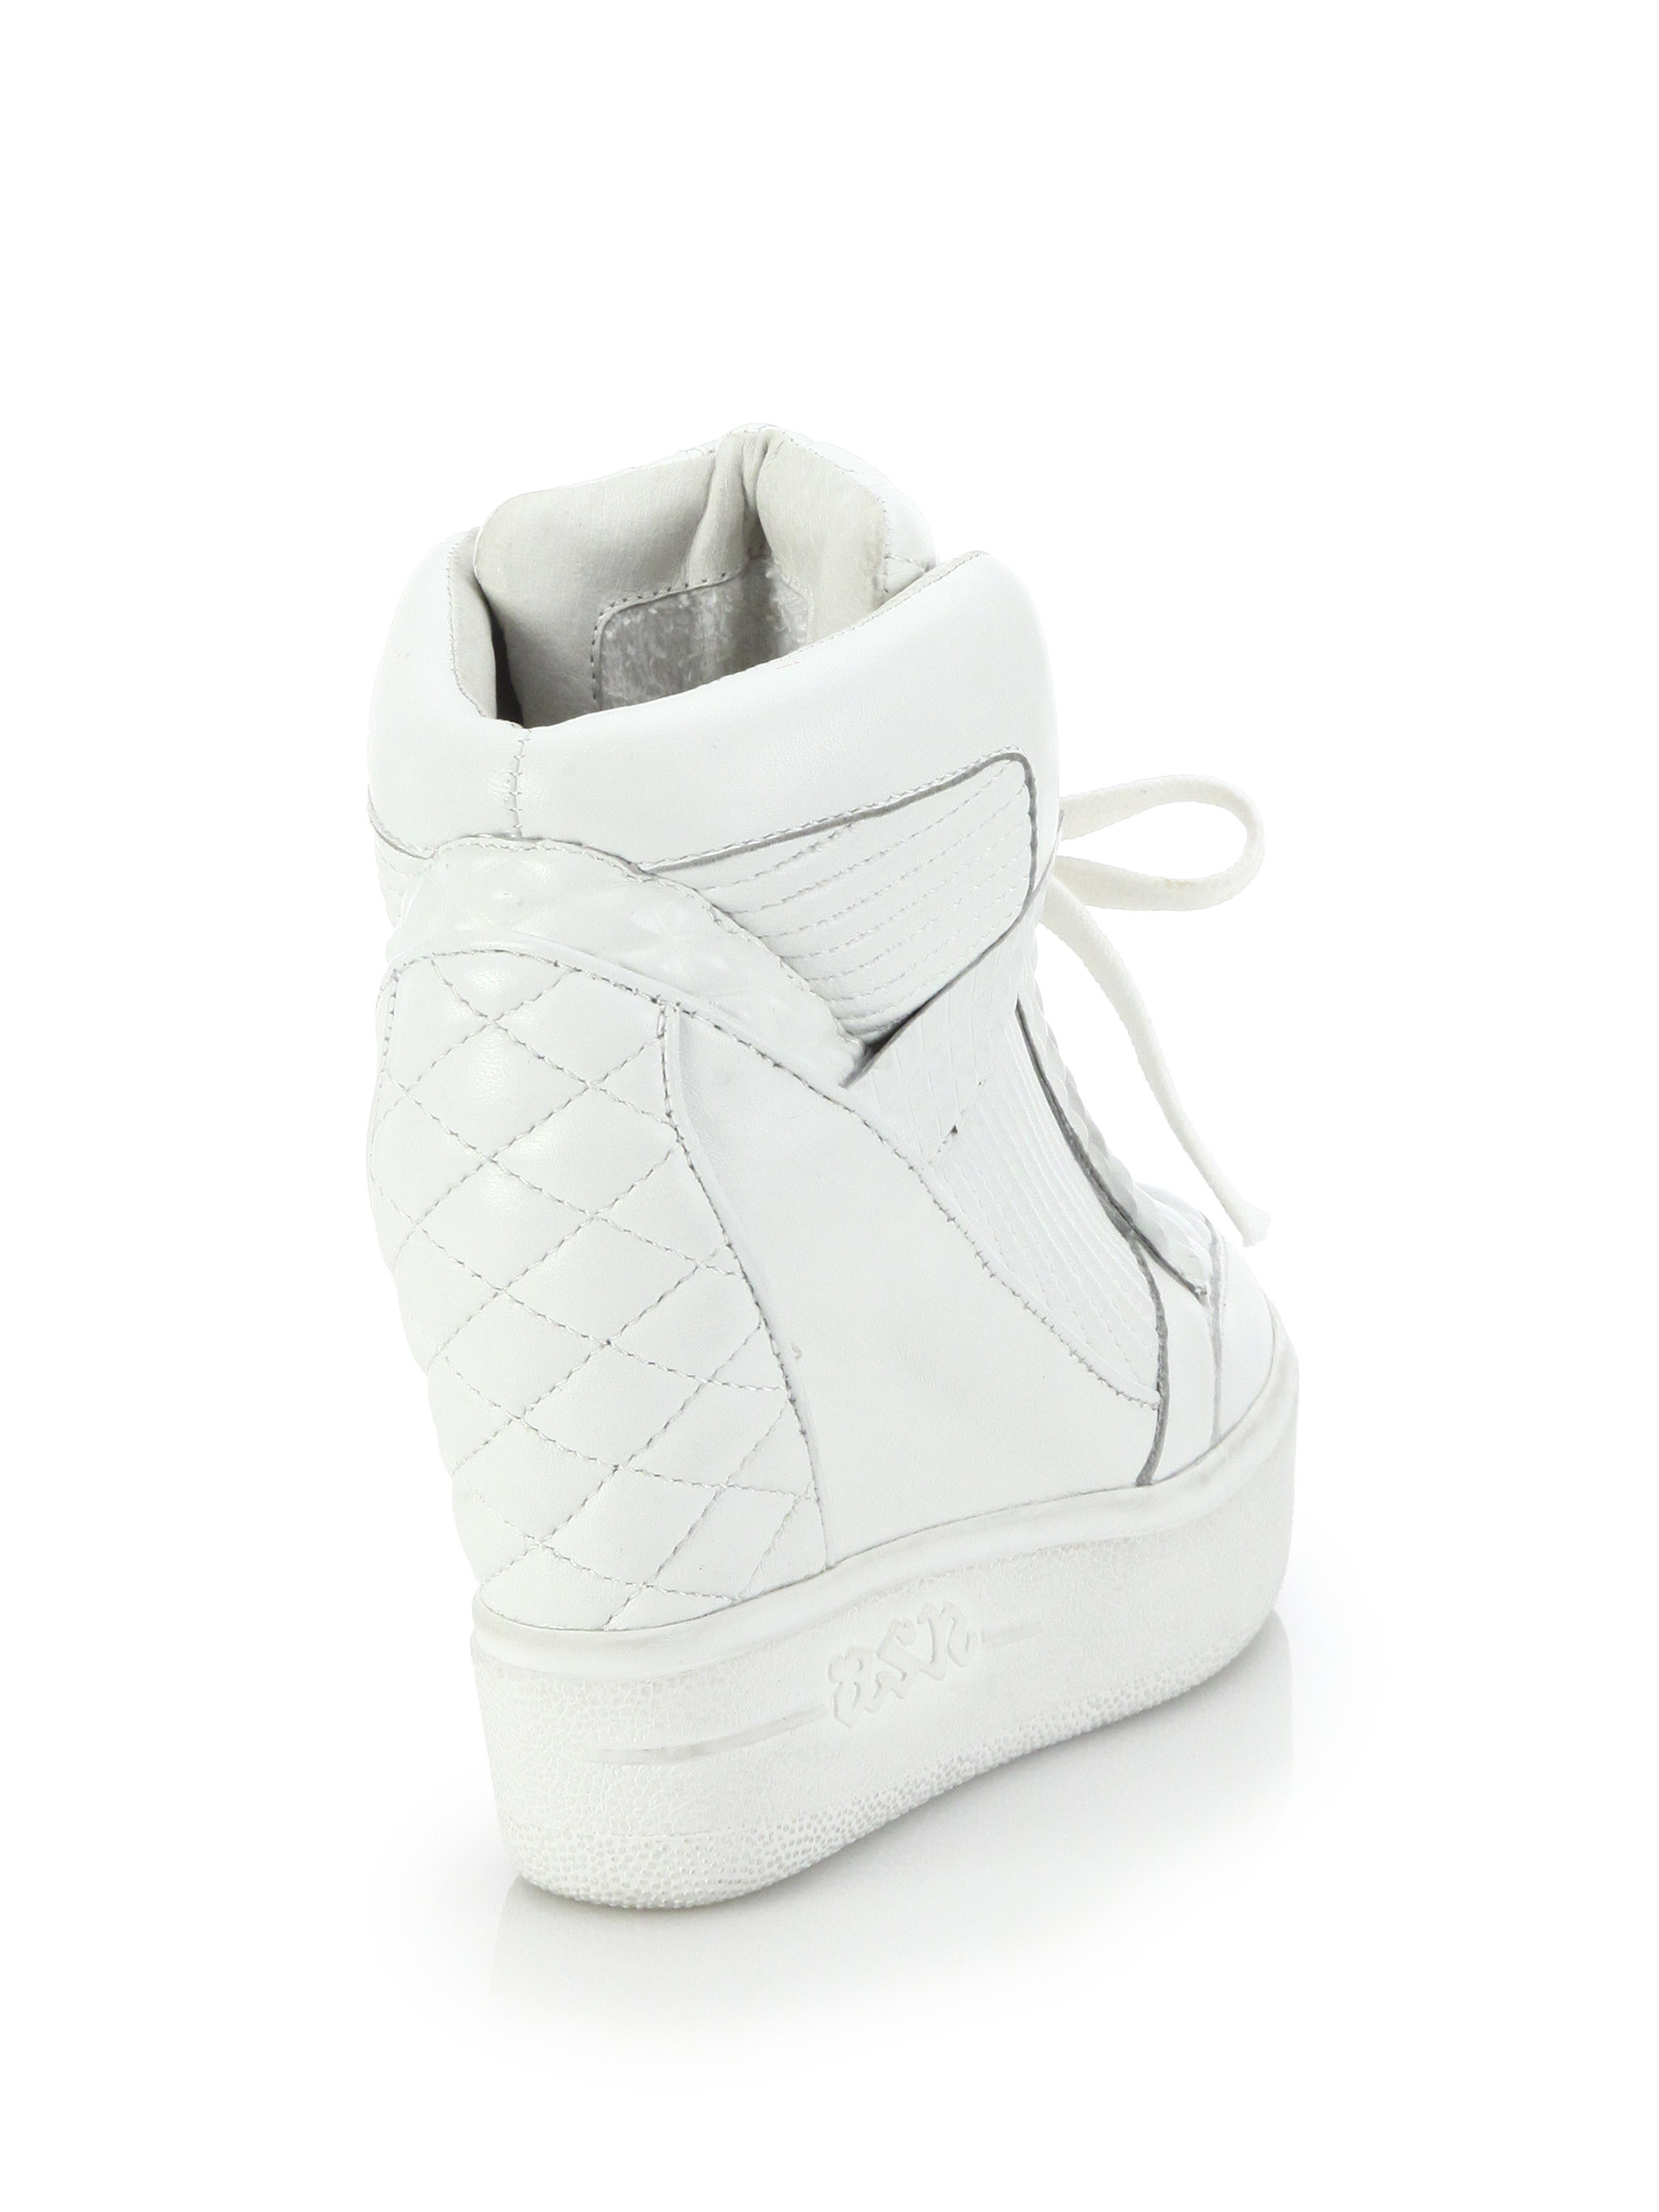 Lyst - Ash Azimut Quilted Leather Wedge Sneakers in White 2a30b213d